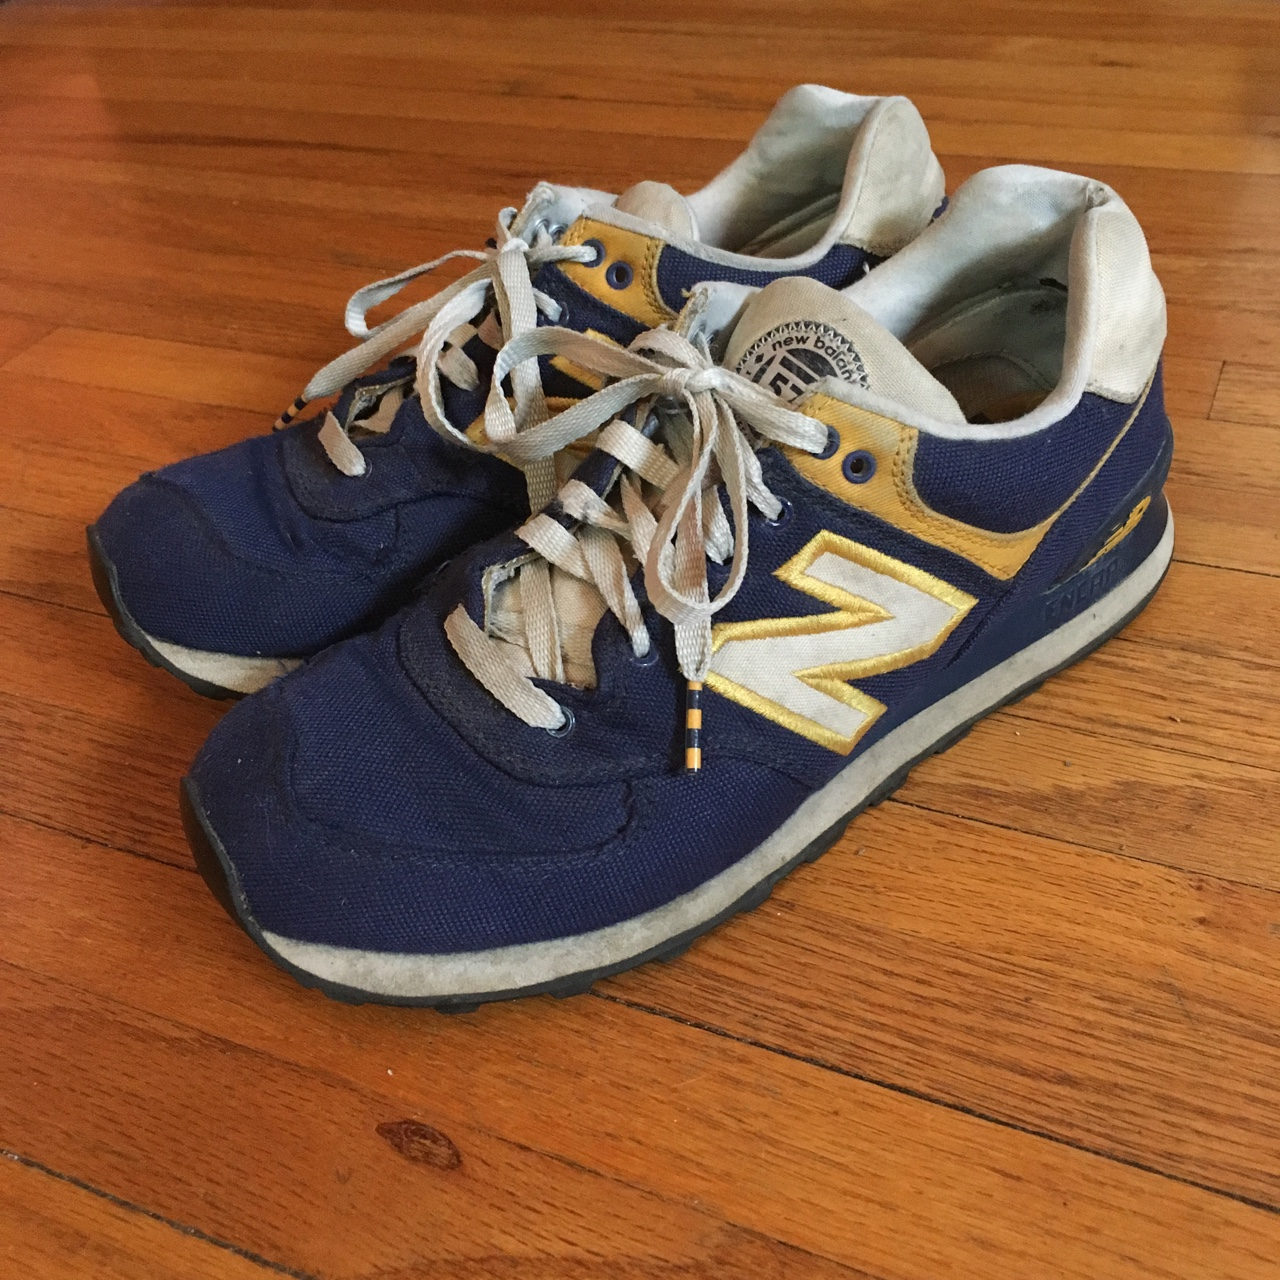 quality design 16a48 05316 Vintage New Balance 574 Classic navy and gold color... - Depop